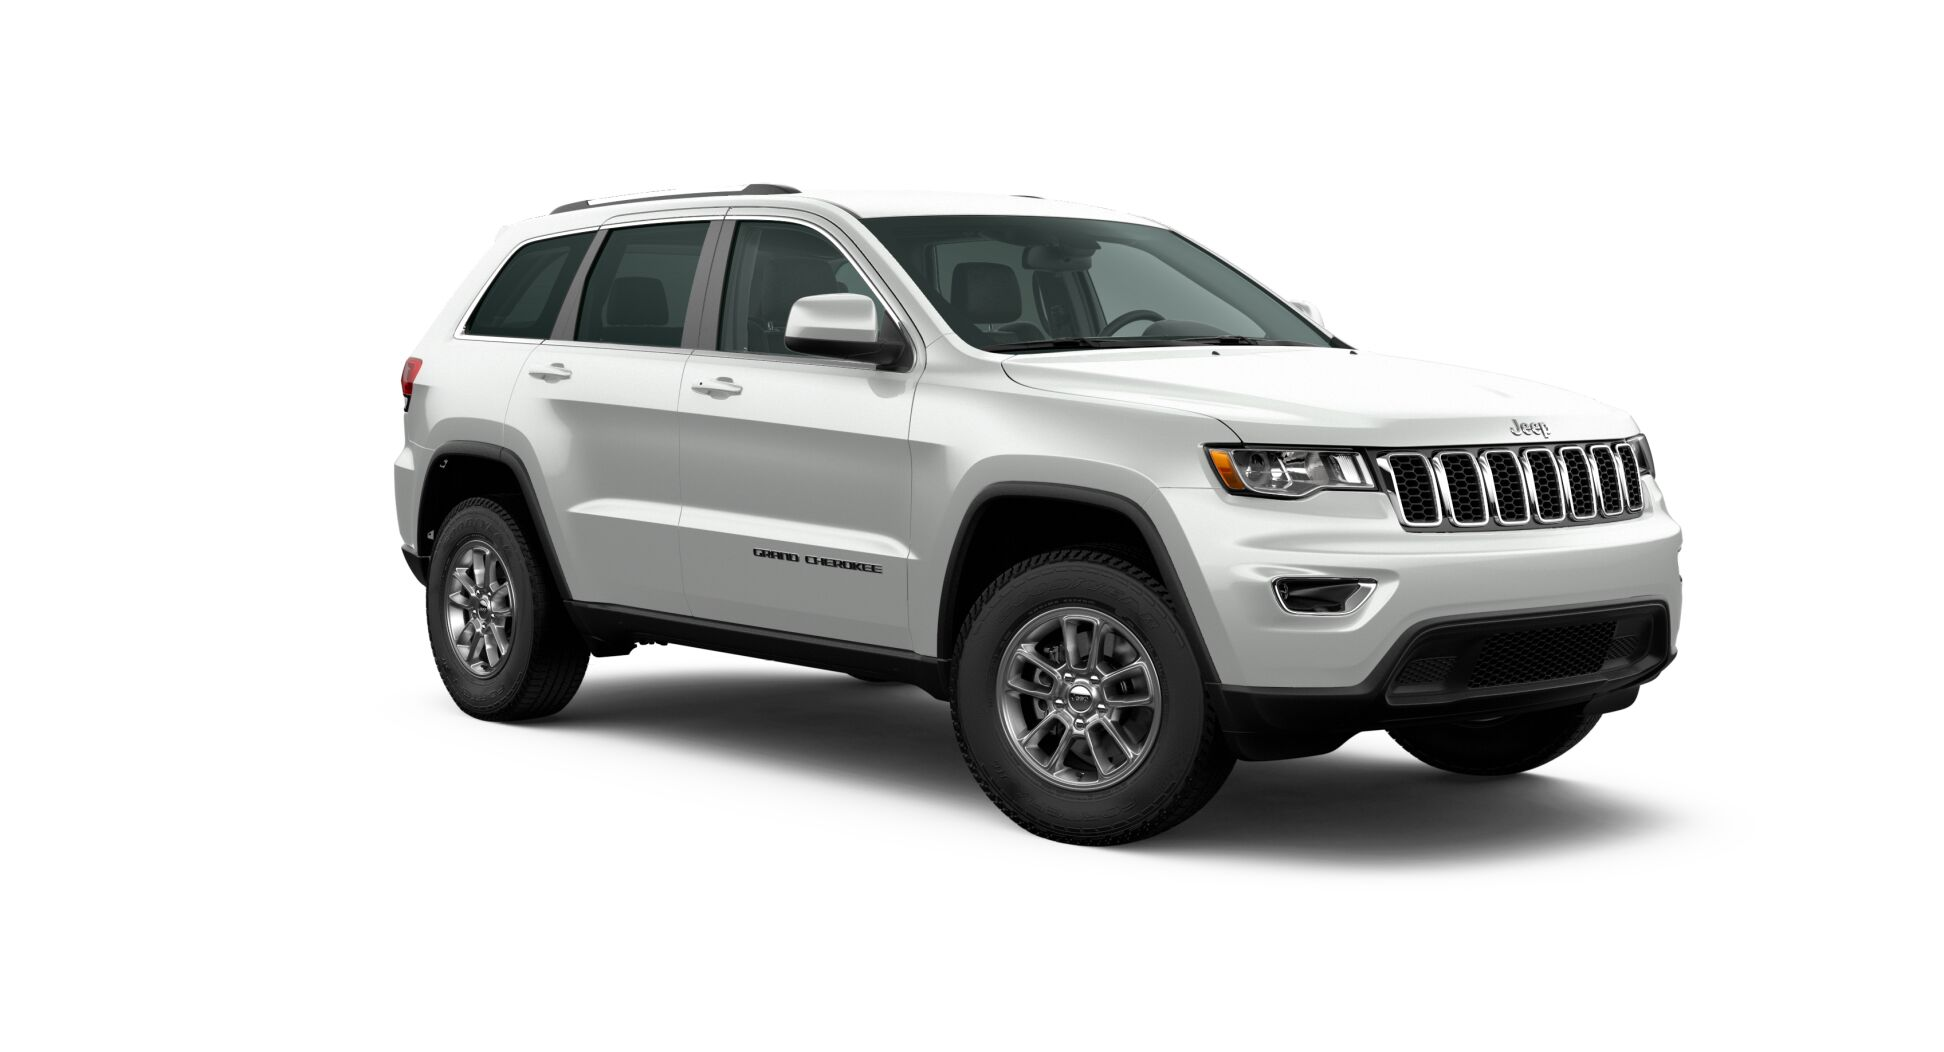 Boulevard Dodge Chrysler Jeep   The 2020 Grand Cherokee ...  2020 Jeep Grand Cherokee Limited White